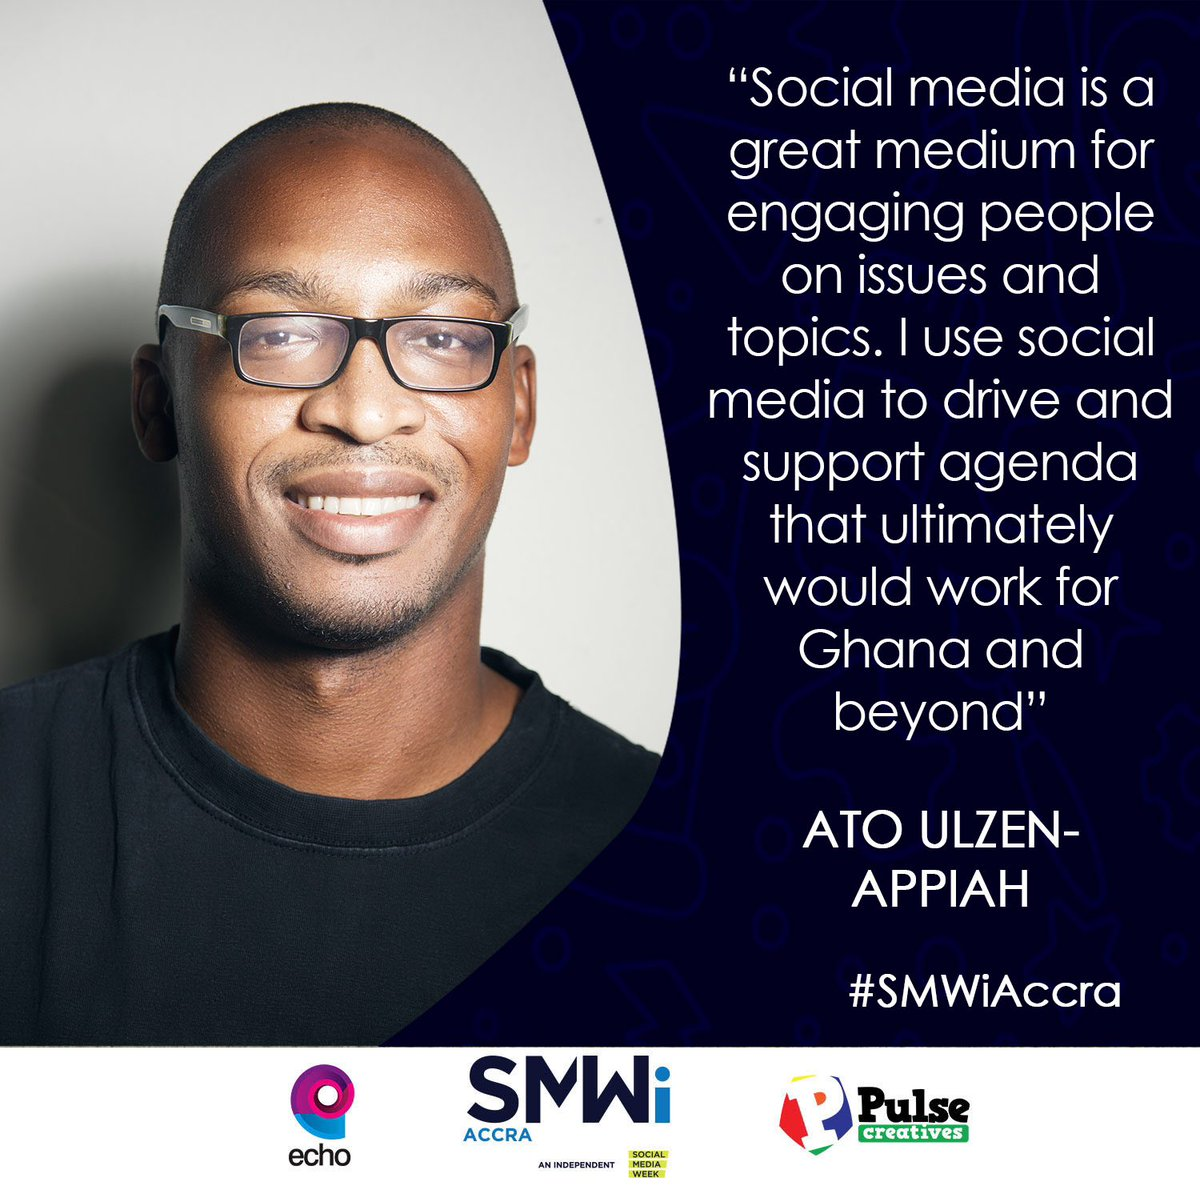 This Is Ato Ulzen-Appiah's Social Media Hack For NGOs